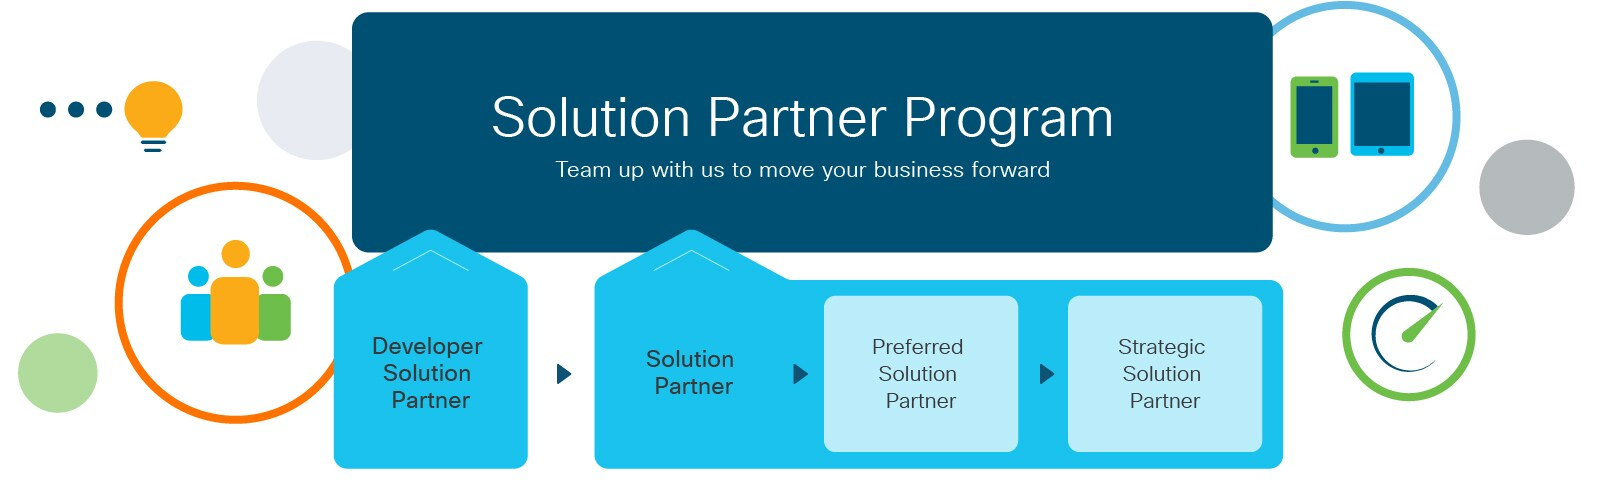 Solution Partner Program